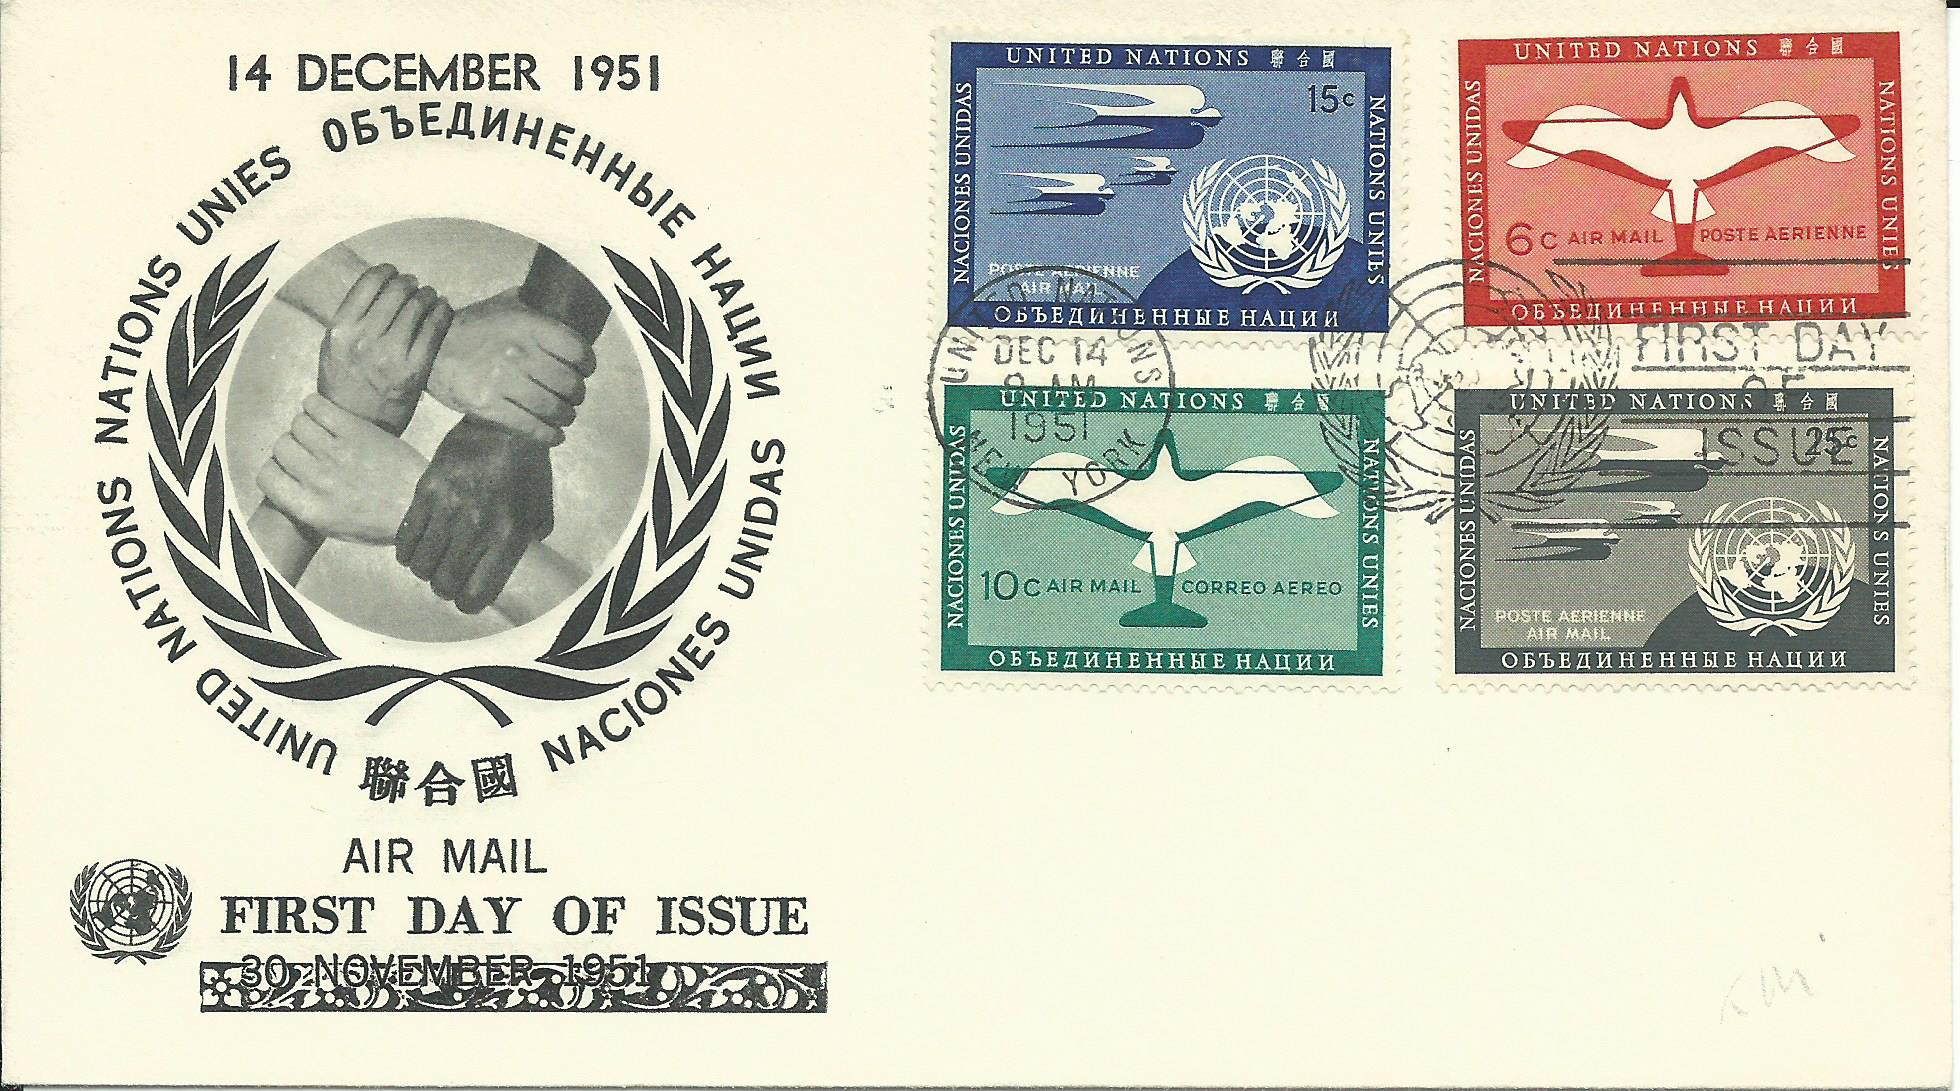 United Nations Philatelists Incorporated Members Only Auction Parcel Ketupat Image 3 Buy It